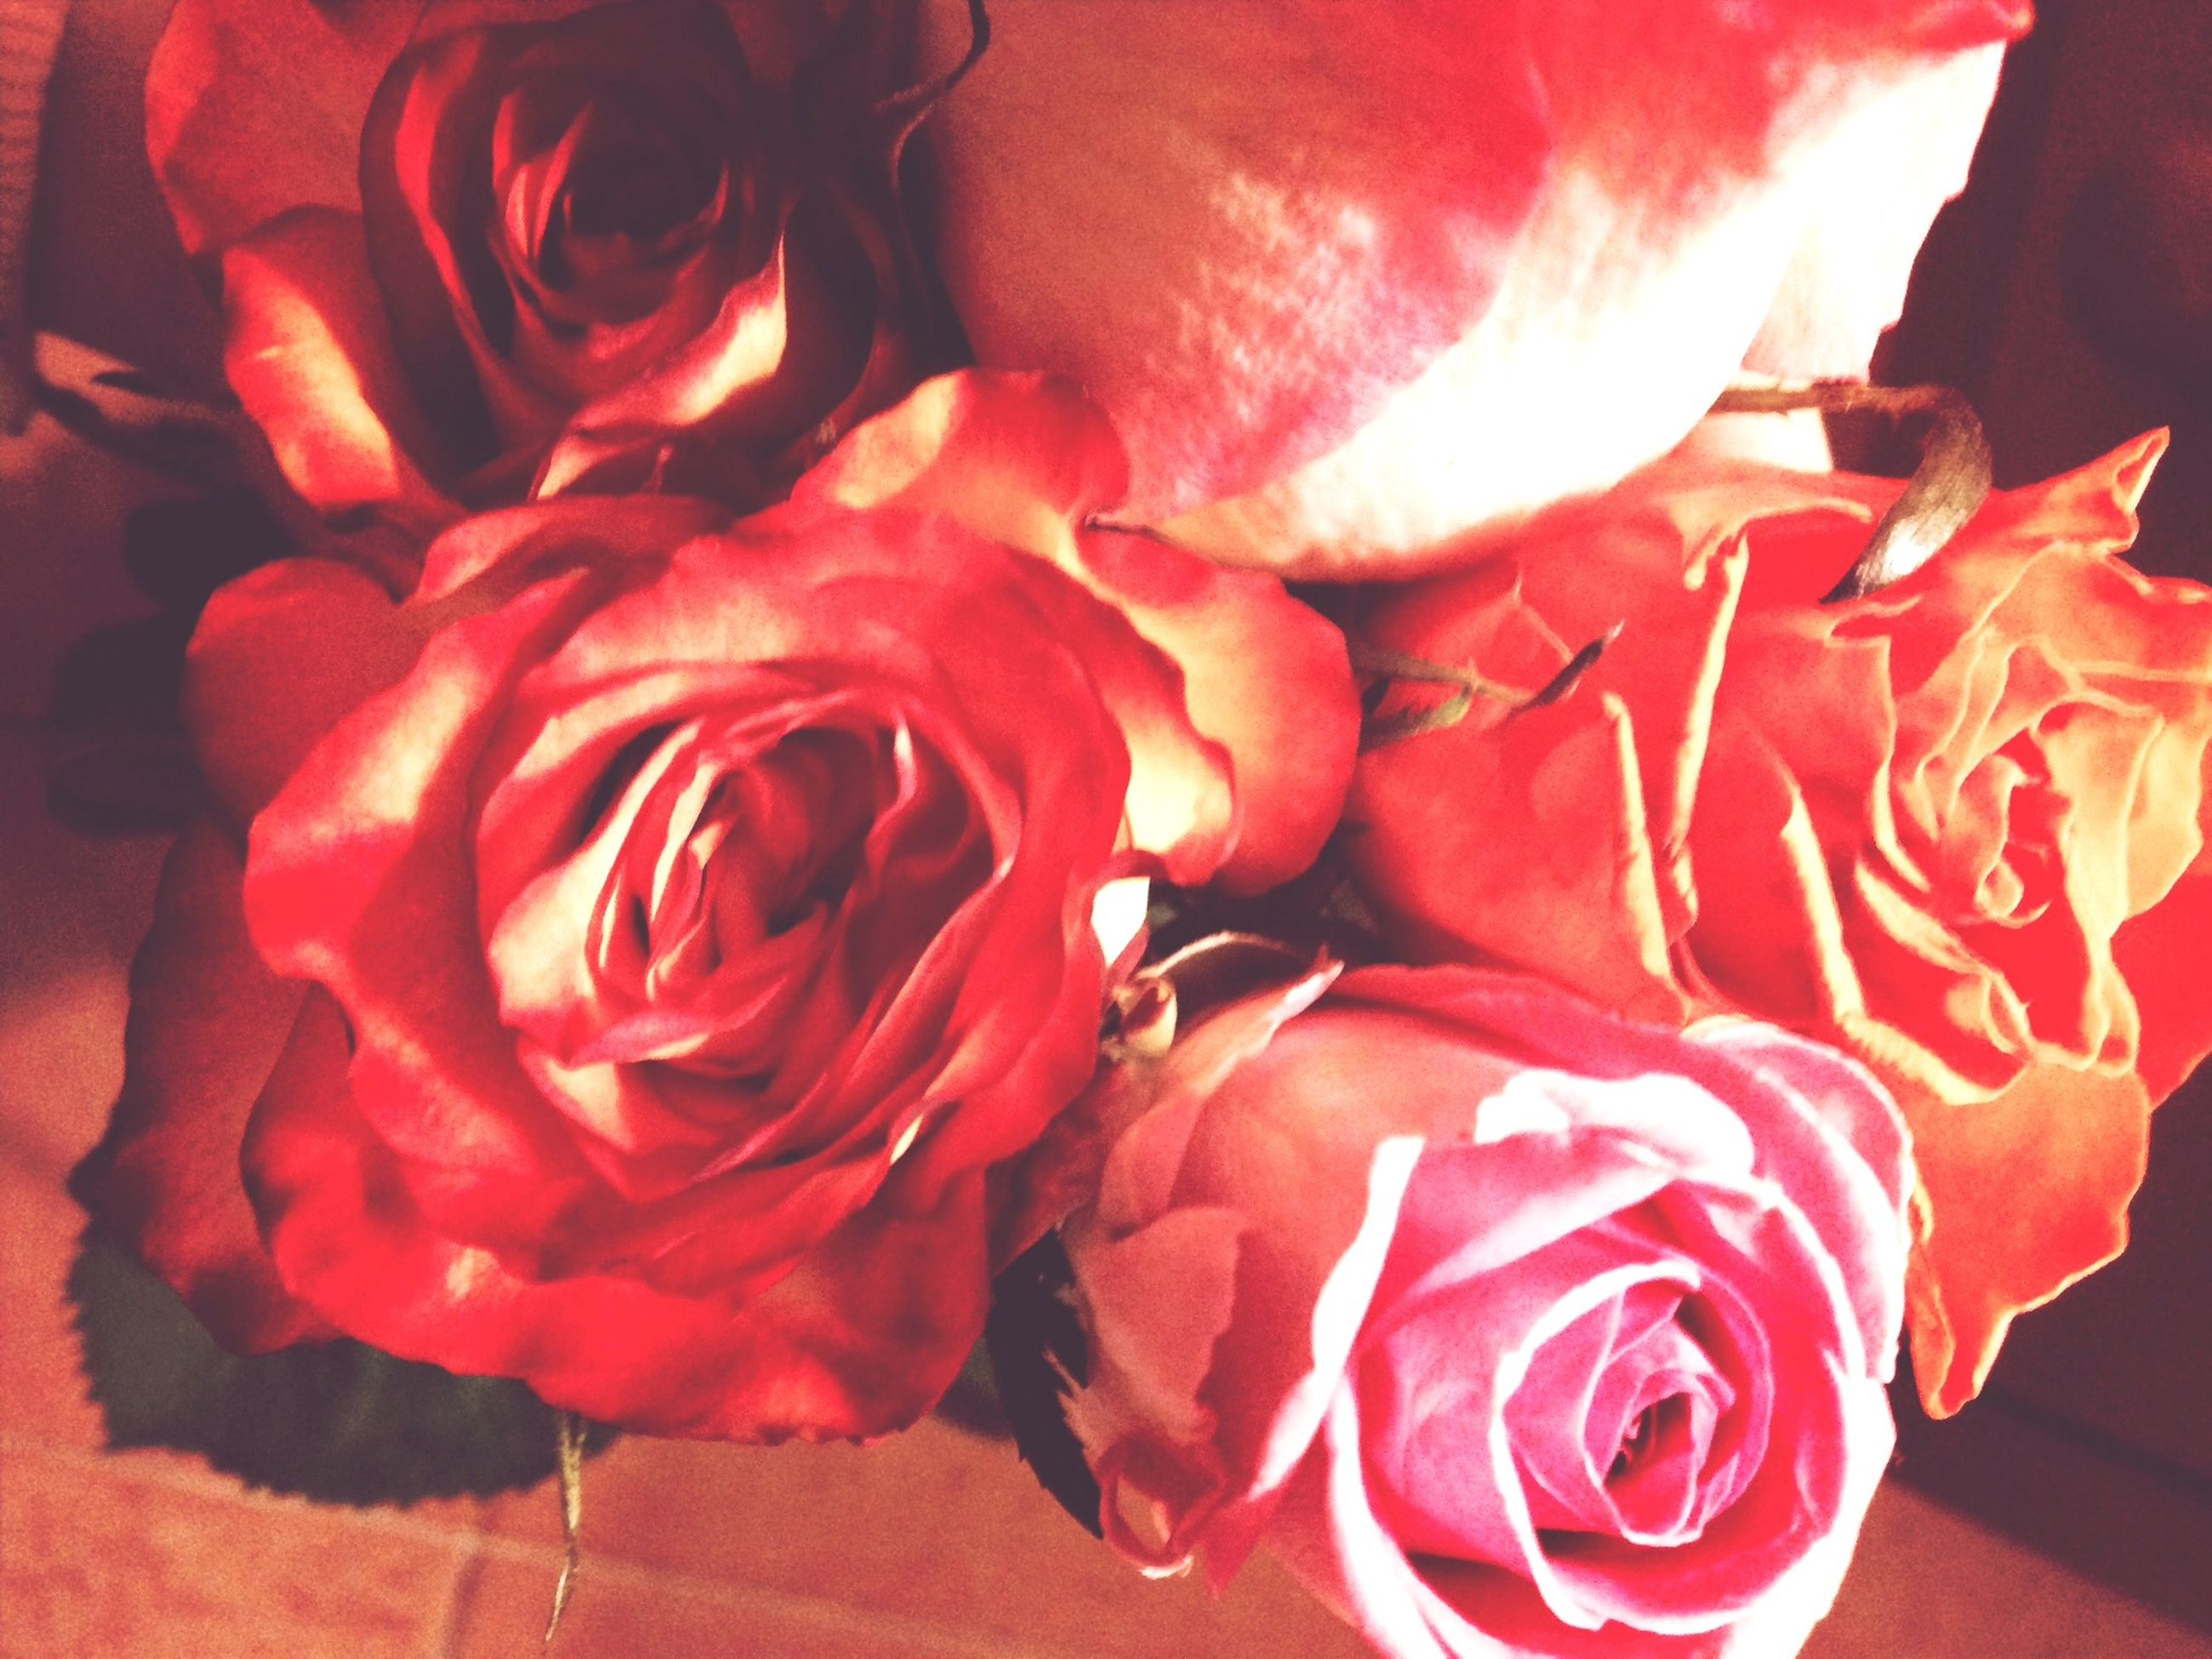 flower, rose - flower, petal, freshness, red, flower head, fragility, rose, indoors, close-up, beauty in nature, pink color, nature, bouquet, high angle view, blooming, single flower, no people, single rose, day